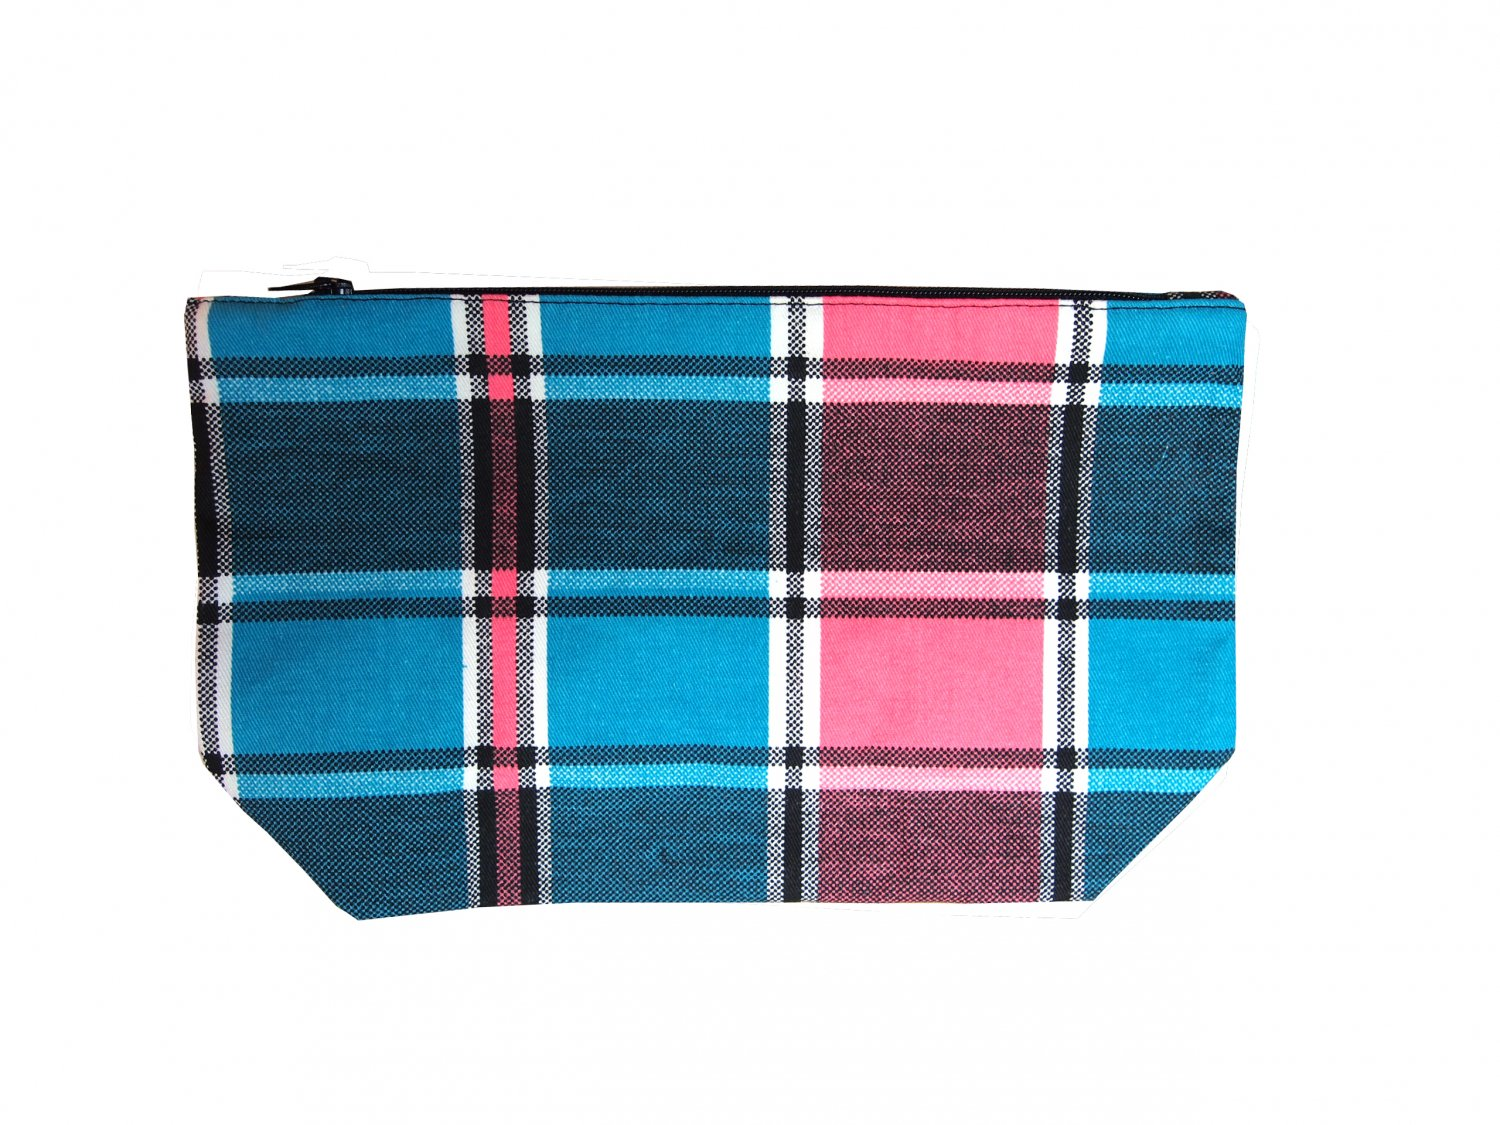 TonTubTim Cosmetic bag large (size L): Blue